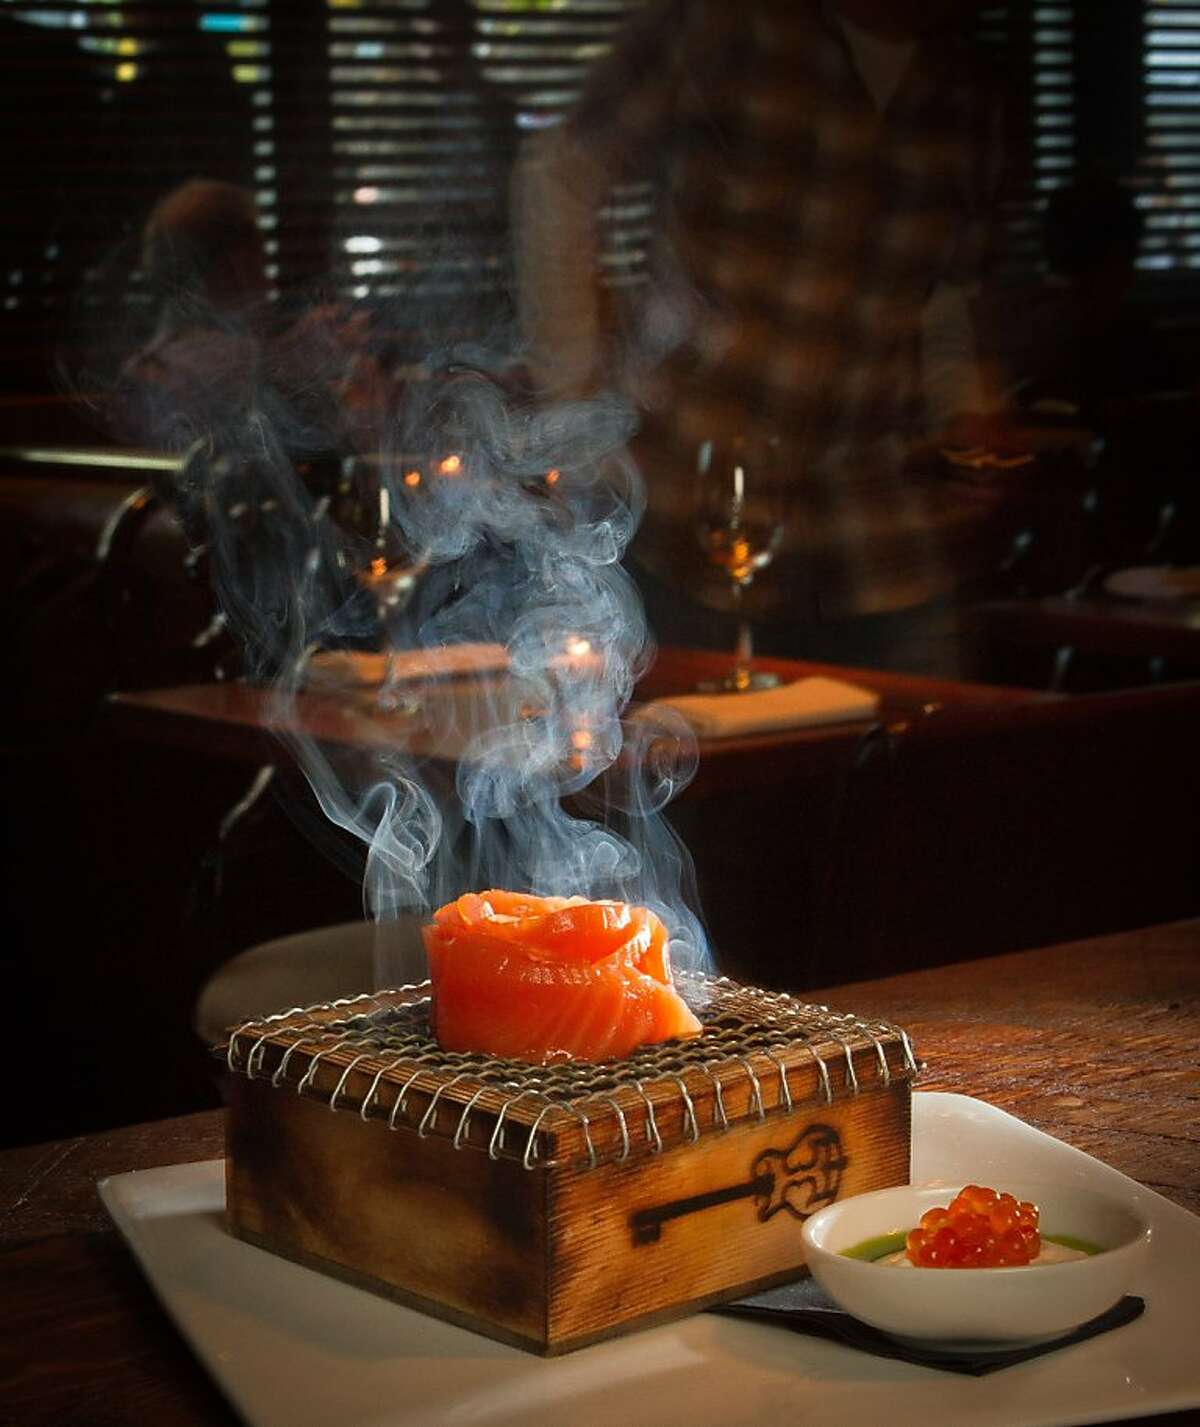 The Smoking Salmon appetizer at Chambers Eat + Drink restaurant in San Francisco, Calif., is seen on August 30th, 2011.